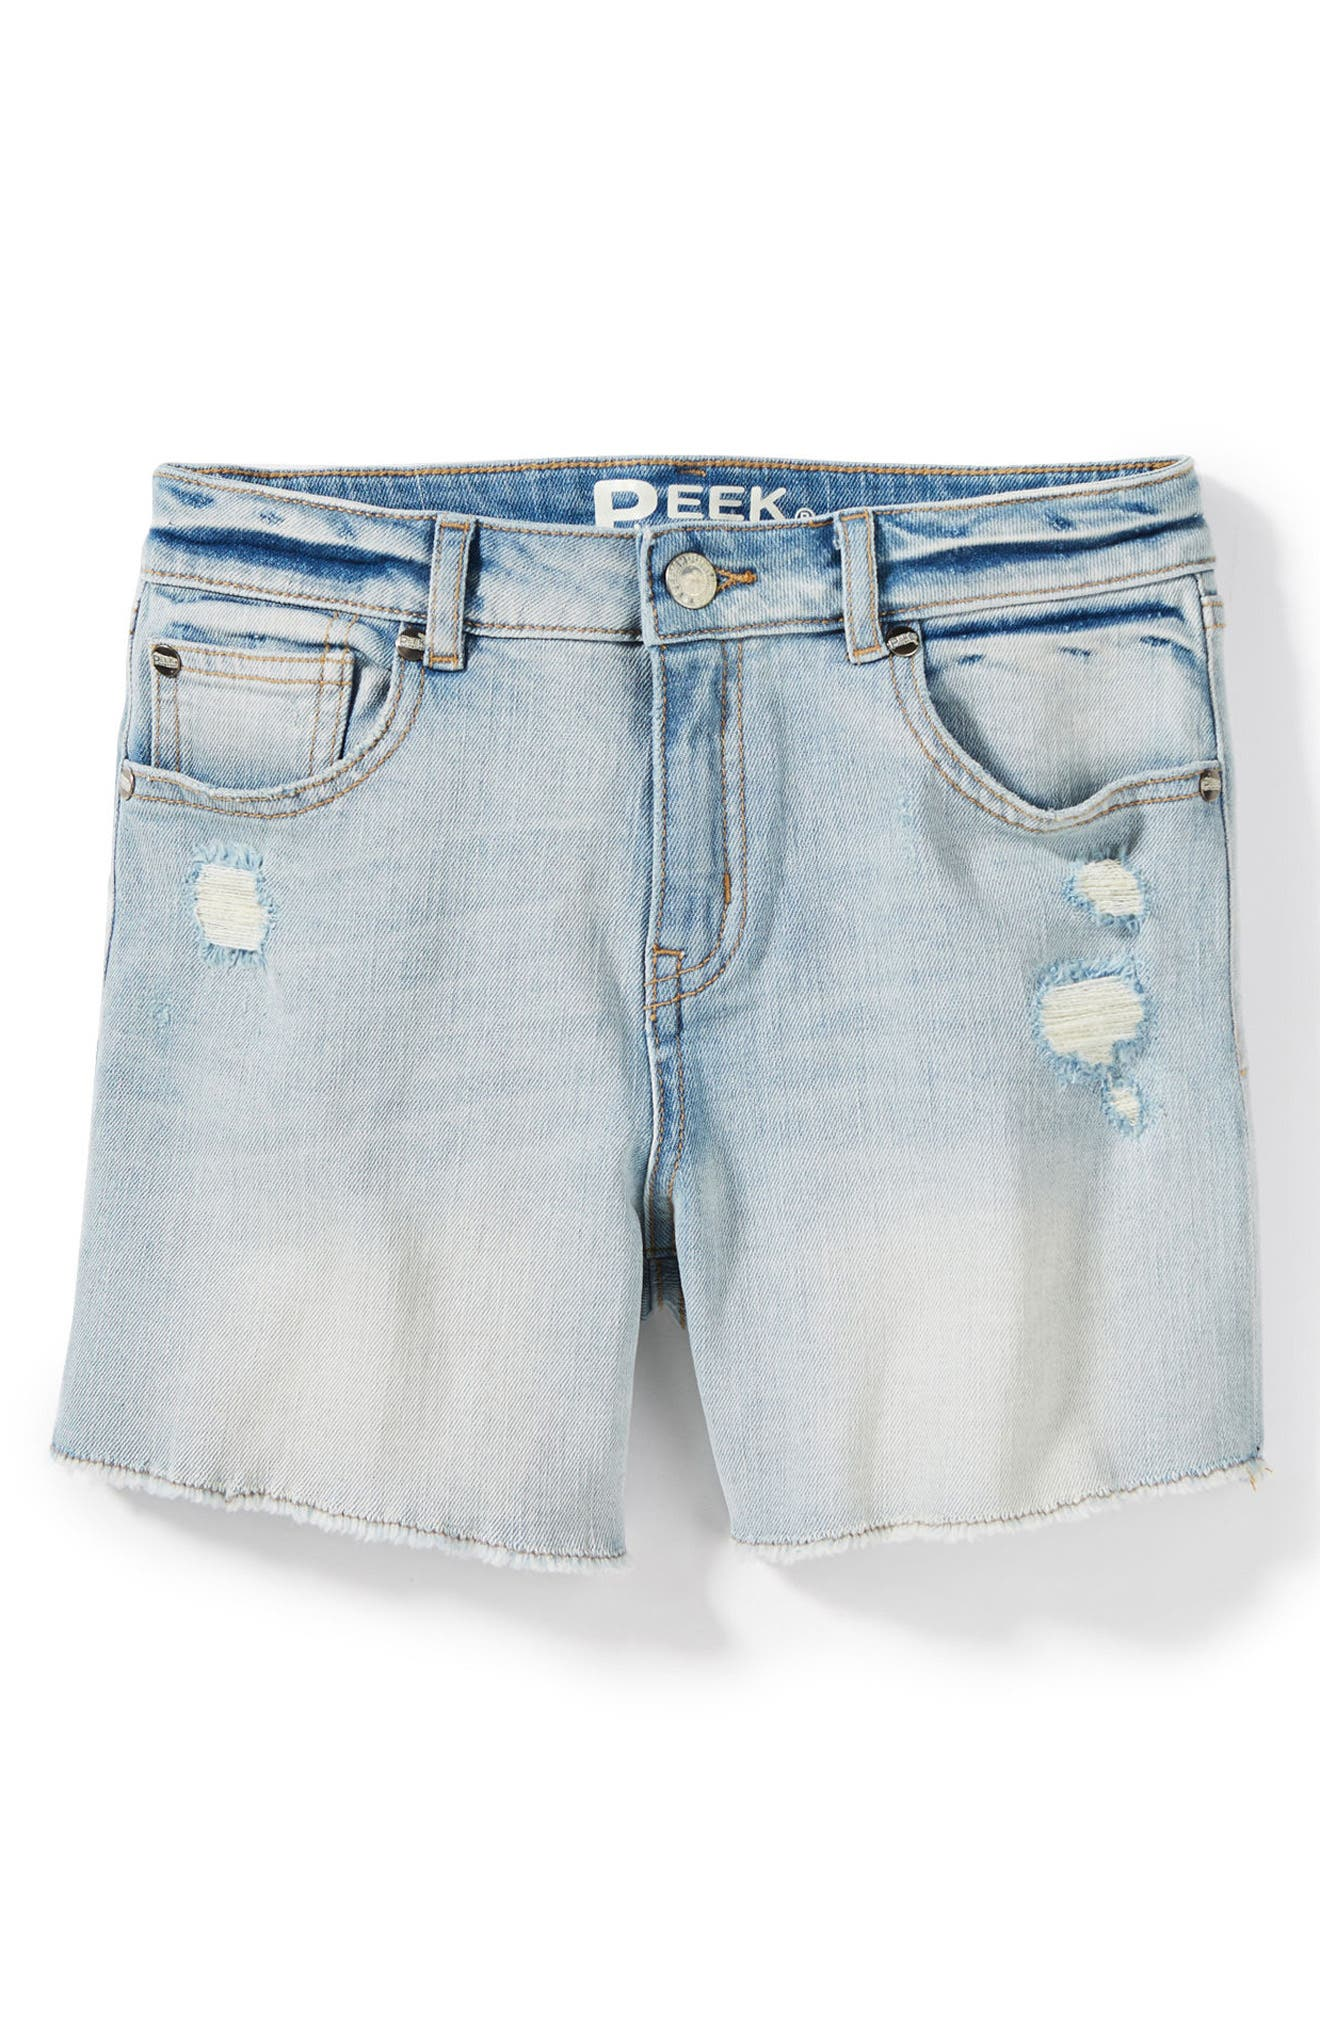 Griffin Rip & Repair Cutoff Denim Shorts,                             Main thumbnail 1, color,